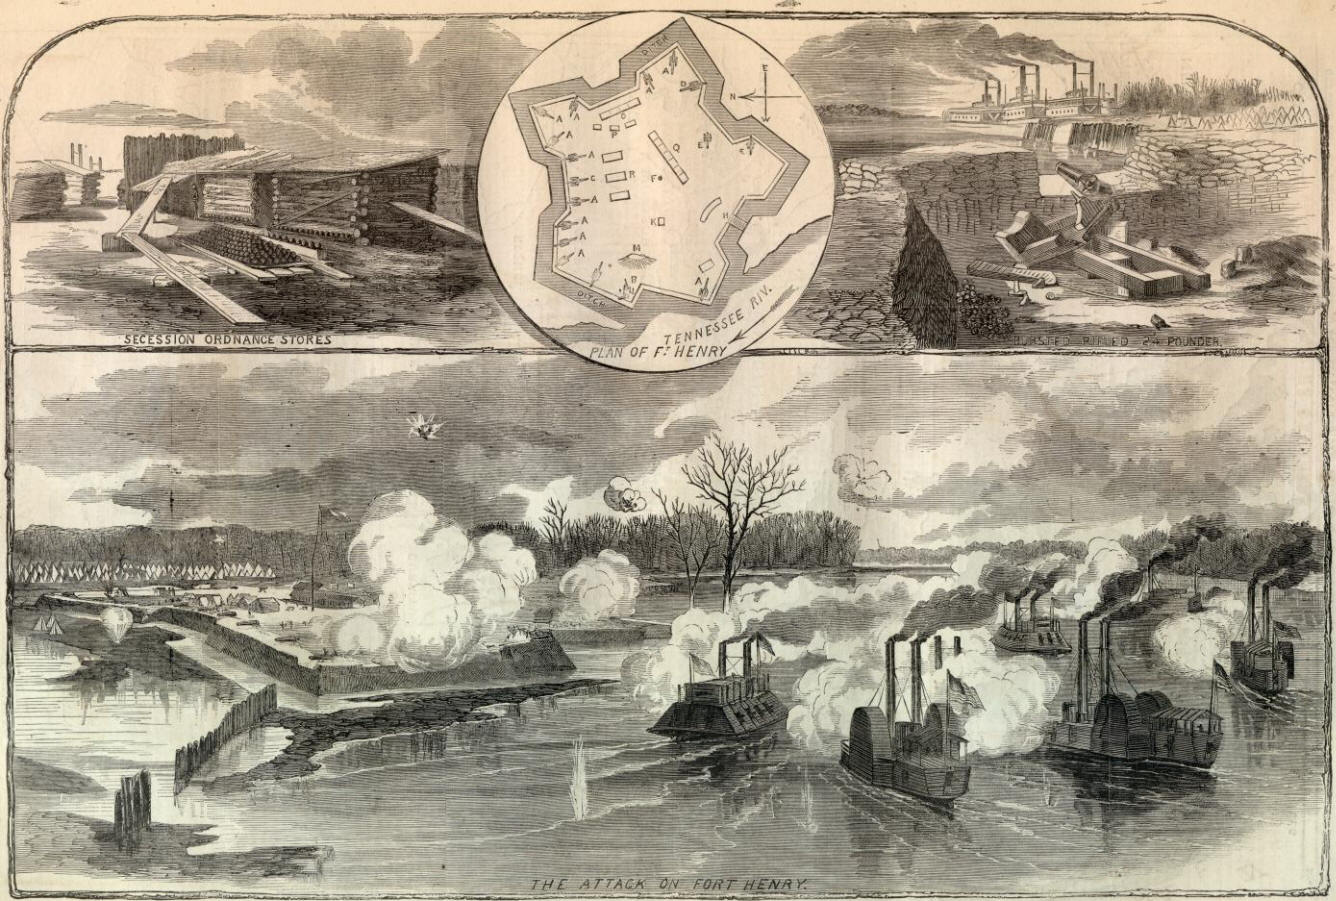 The Capture of Fort Henry